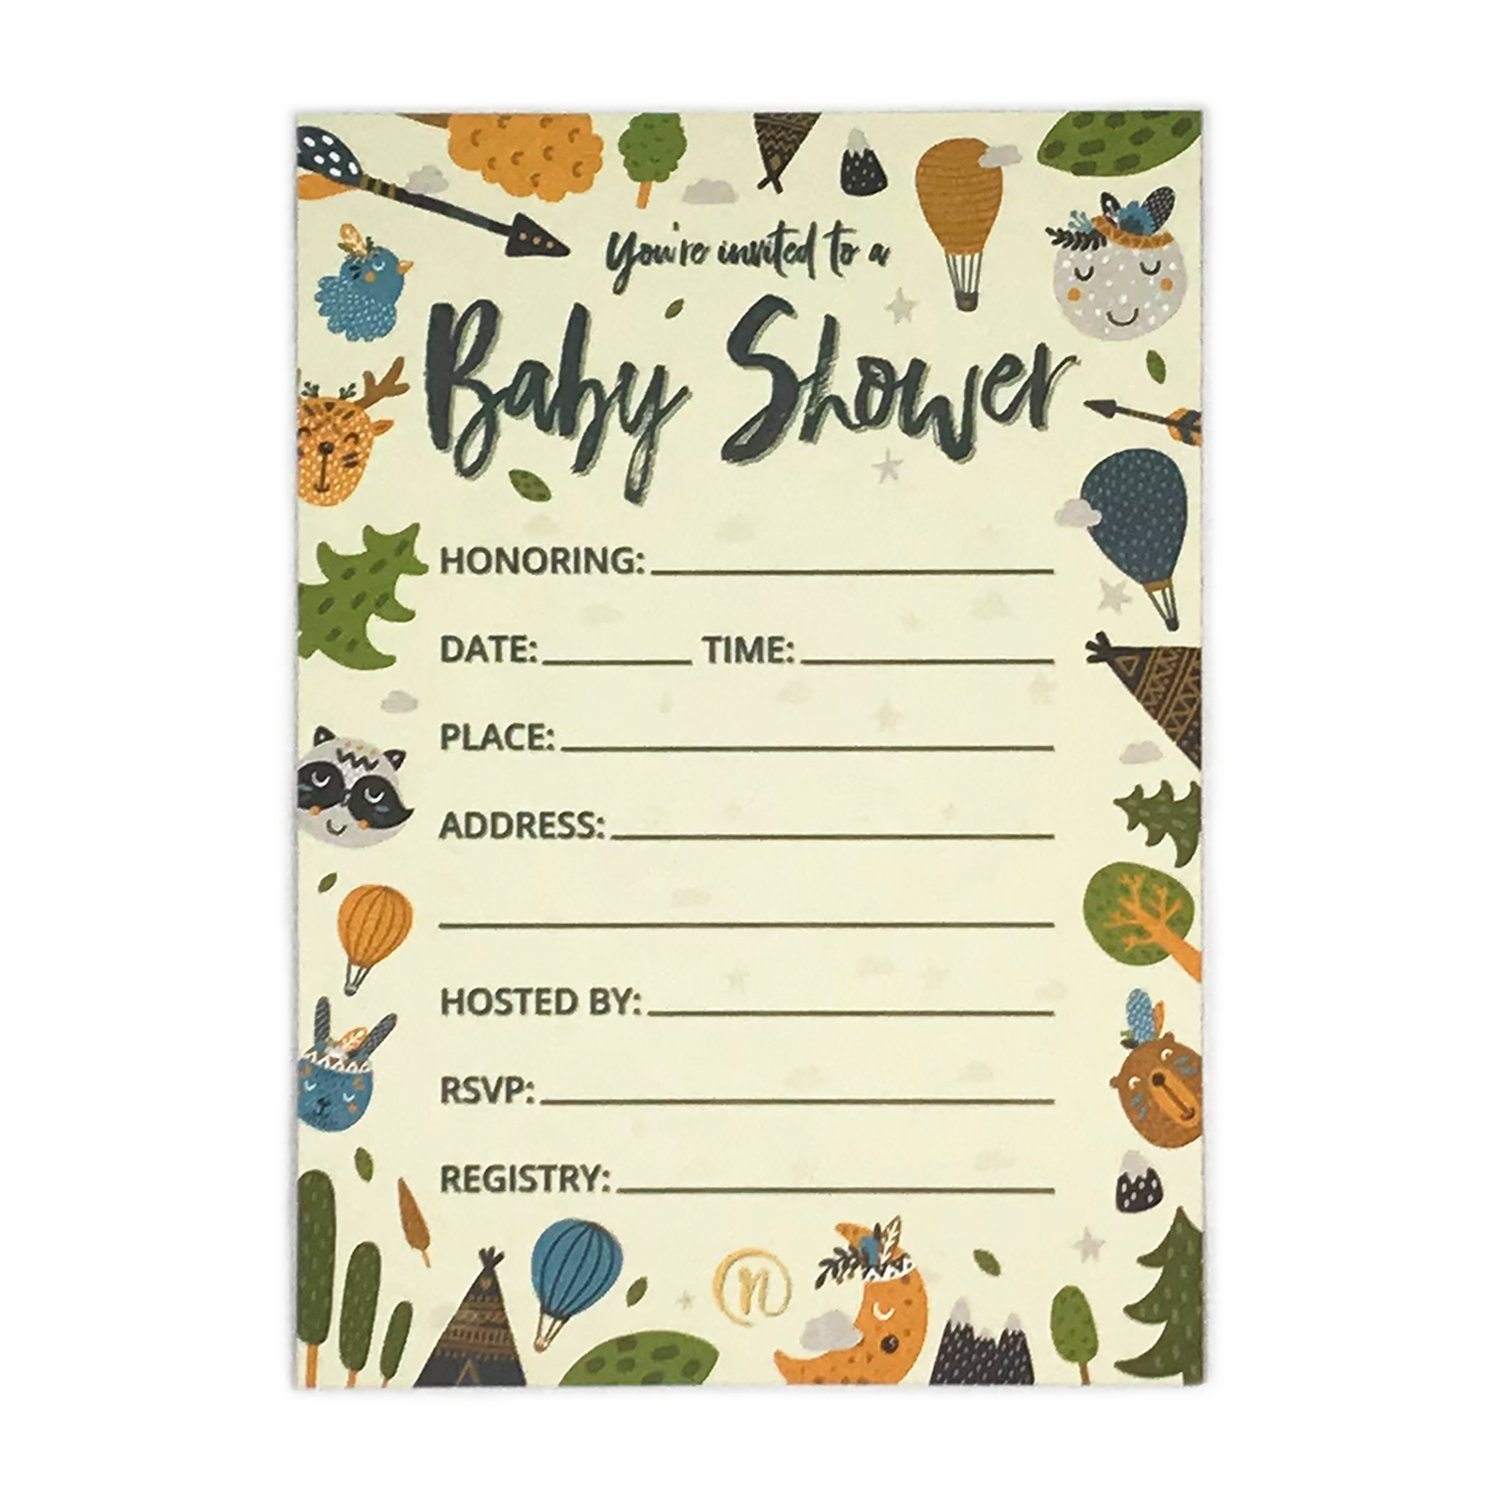 Baby Shower Invitation Cards with Diaper Raffle Tickets for Boy and Girl - Woodland Forest Animals - Set of 25 Party Invites - by Nalalife by Nalalife (Image #3)